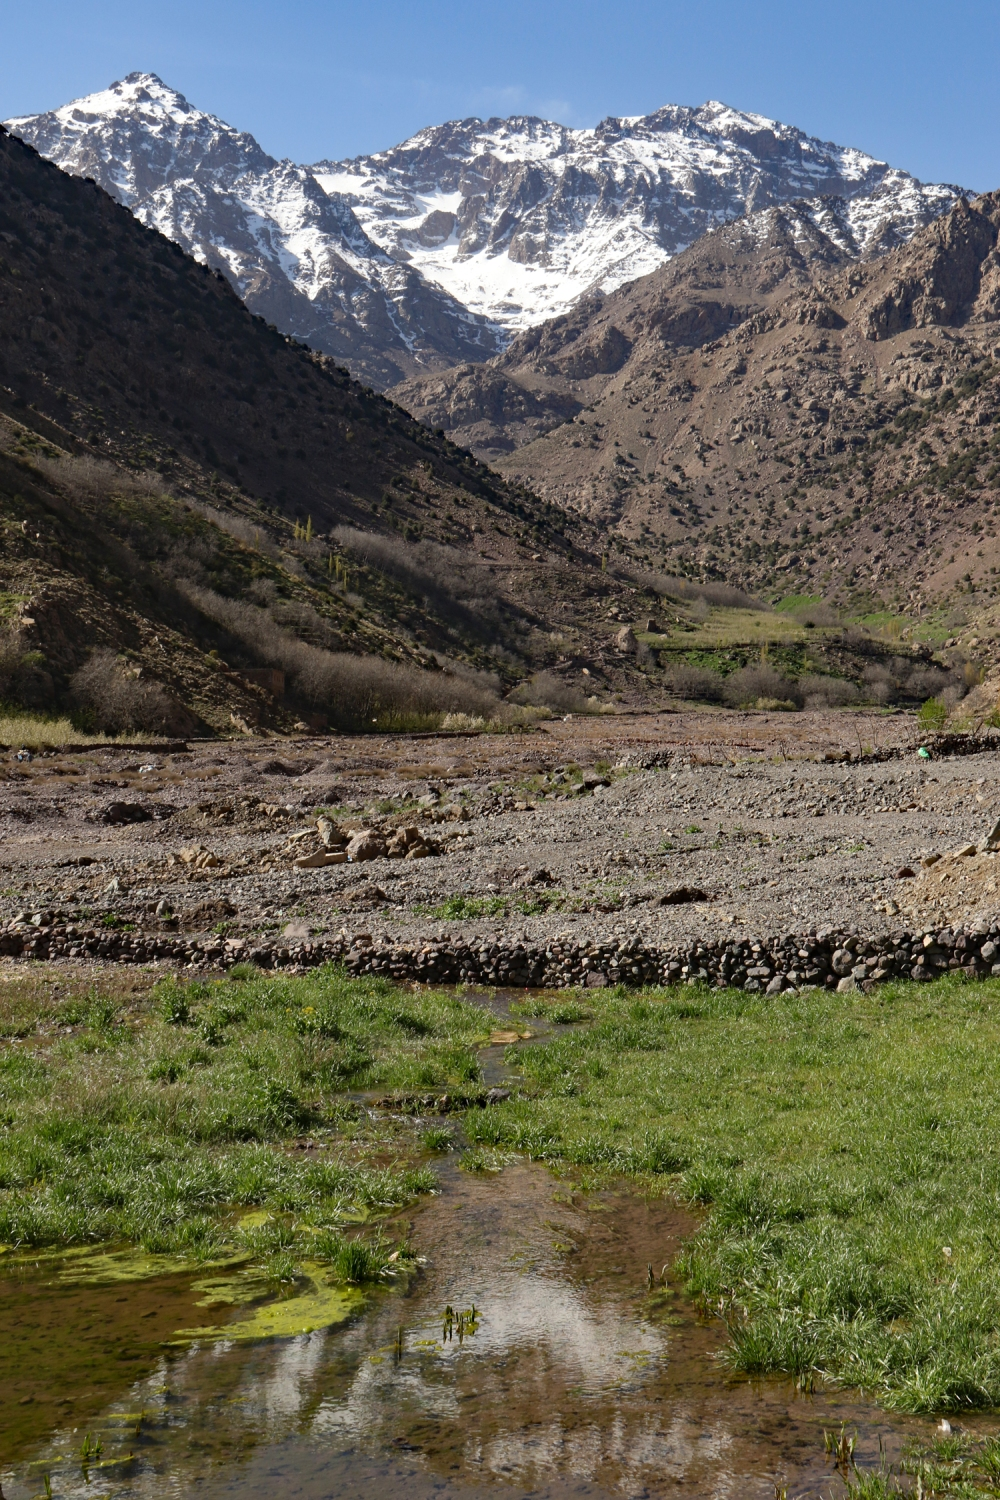 On the plains...one last look at Toubkal